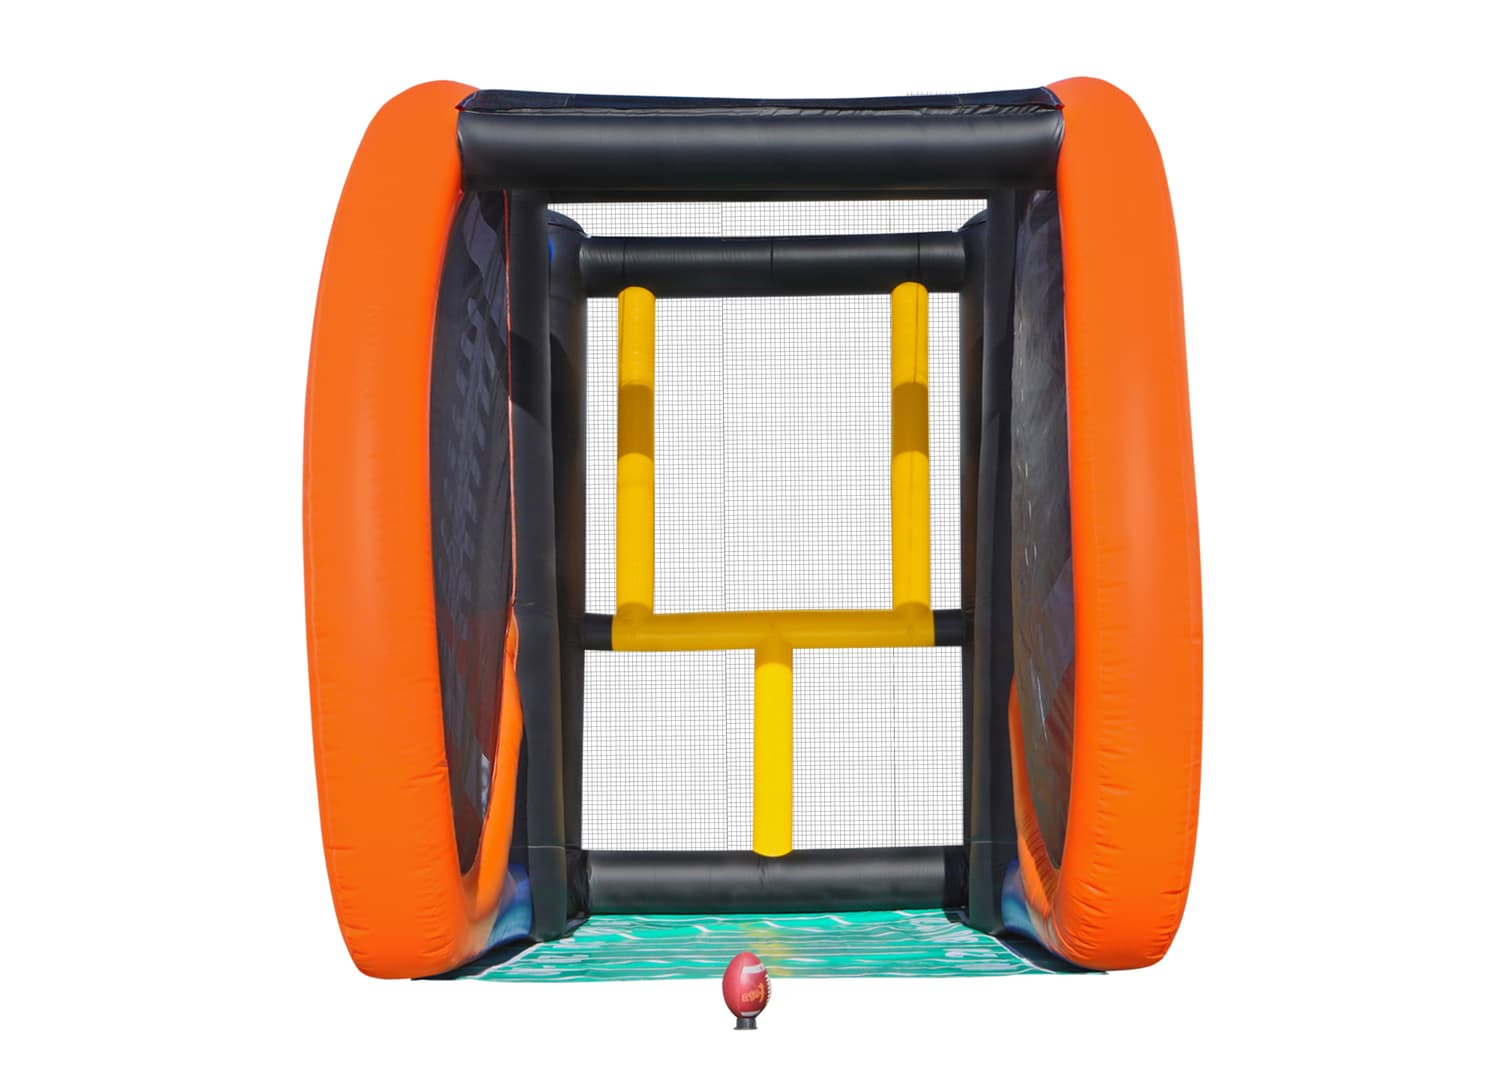 Test your Football field goal kicking skills with this fun and addicting interactive sports game. 22' l x 16' w x 18' h.